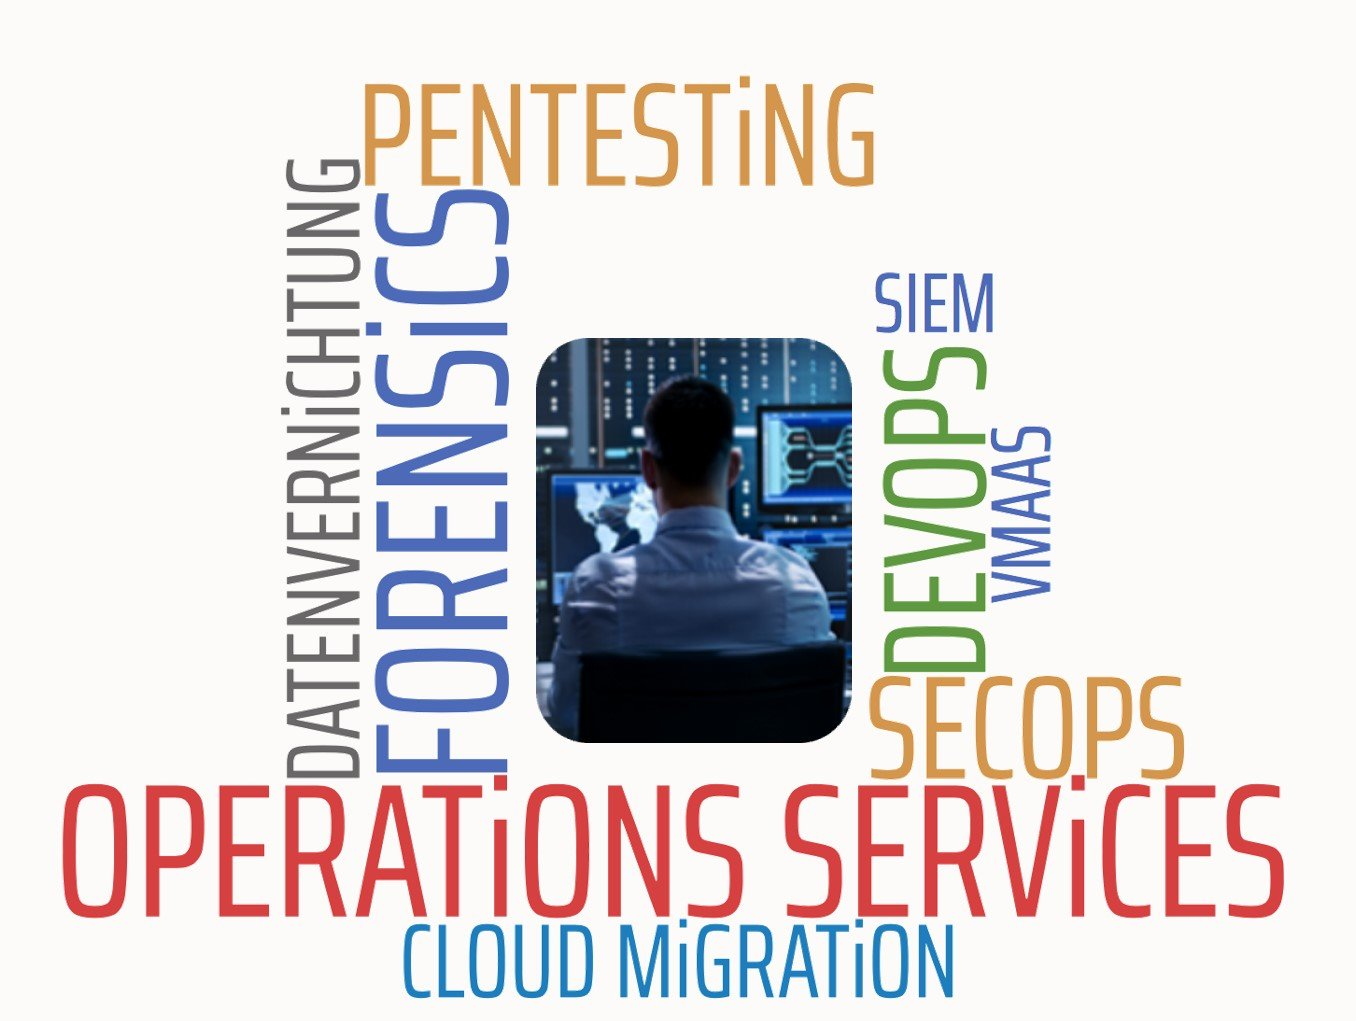 WordCloud_OperationsServices